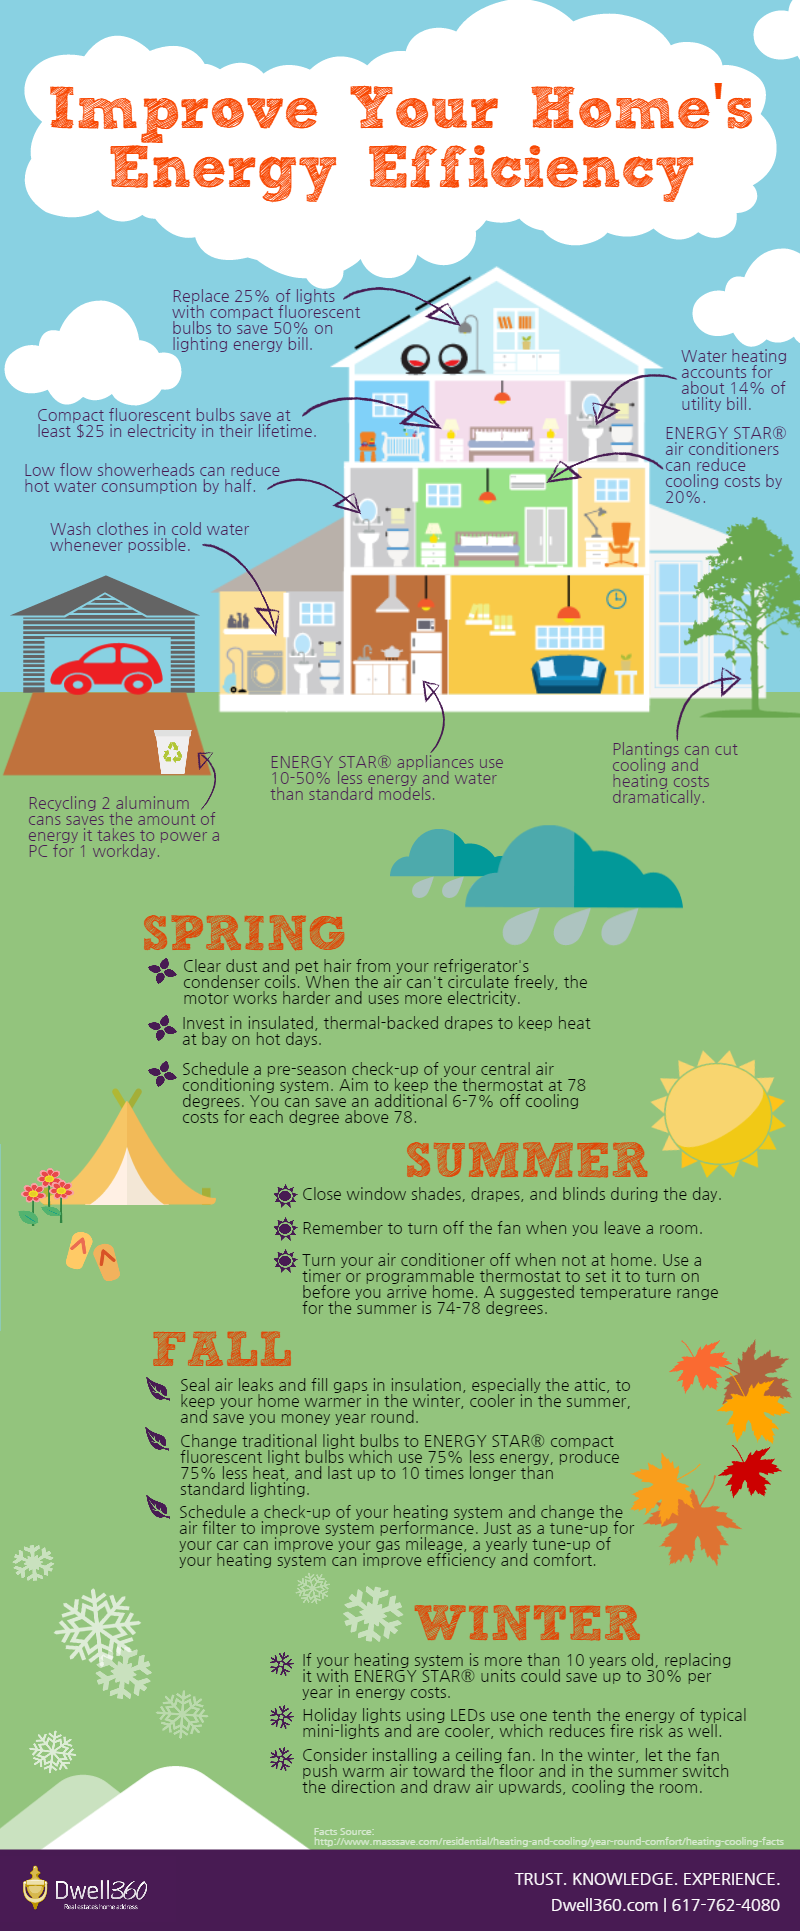 Improving Energy Efficiency Infographic by Dwell360